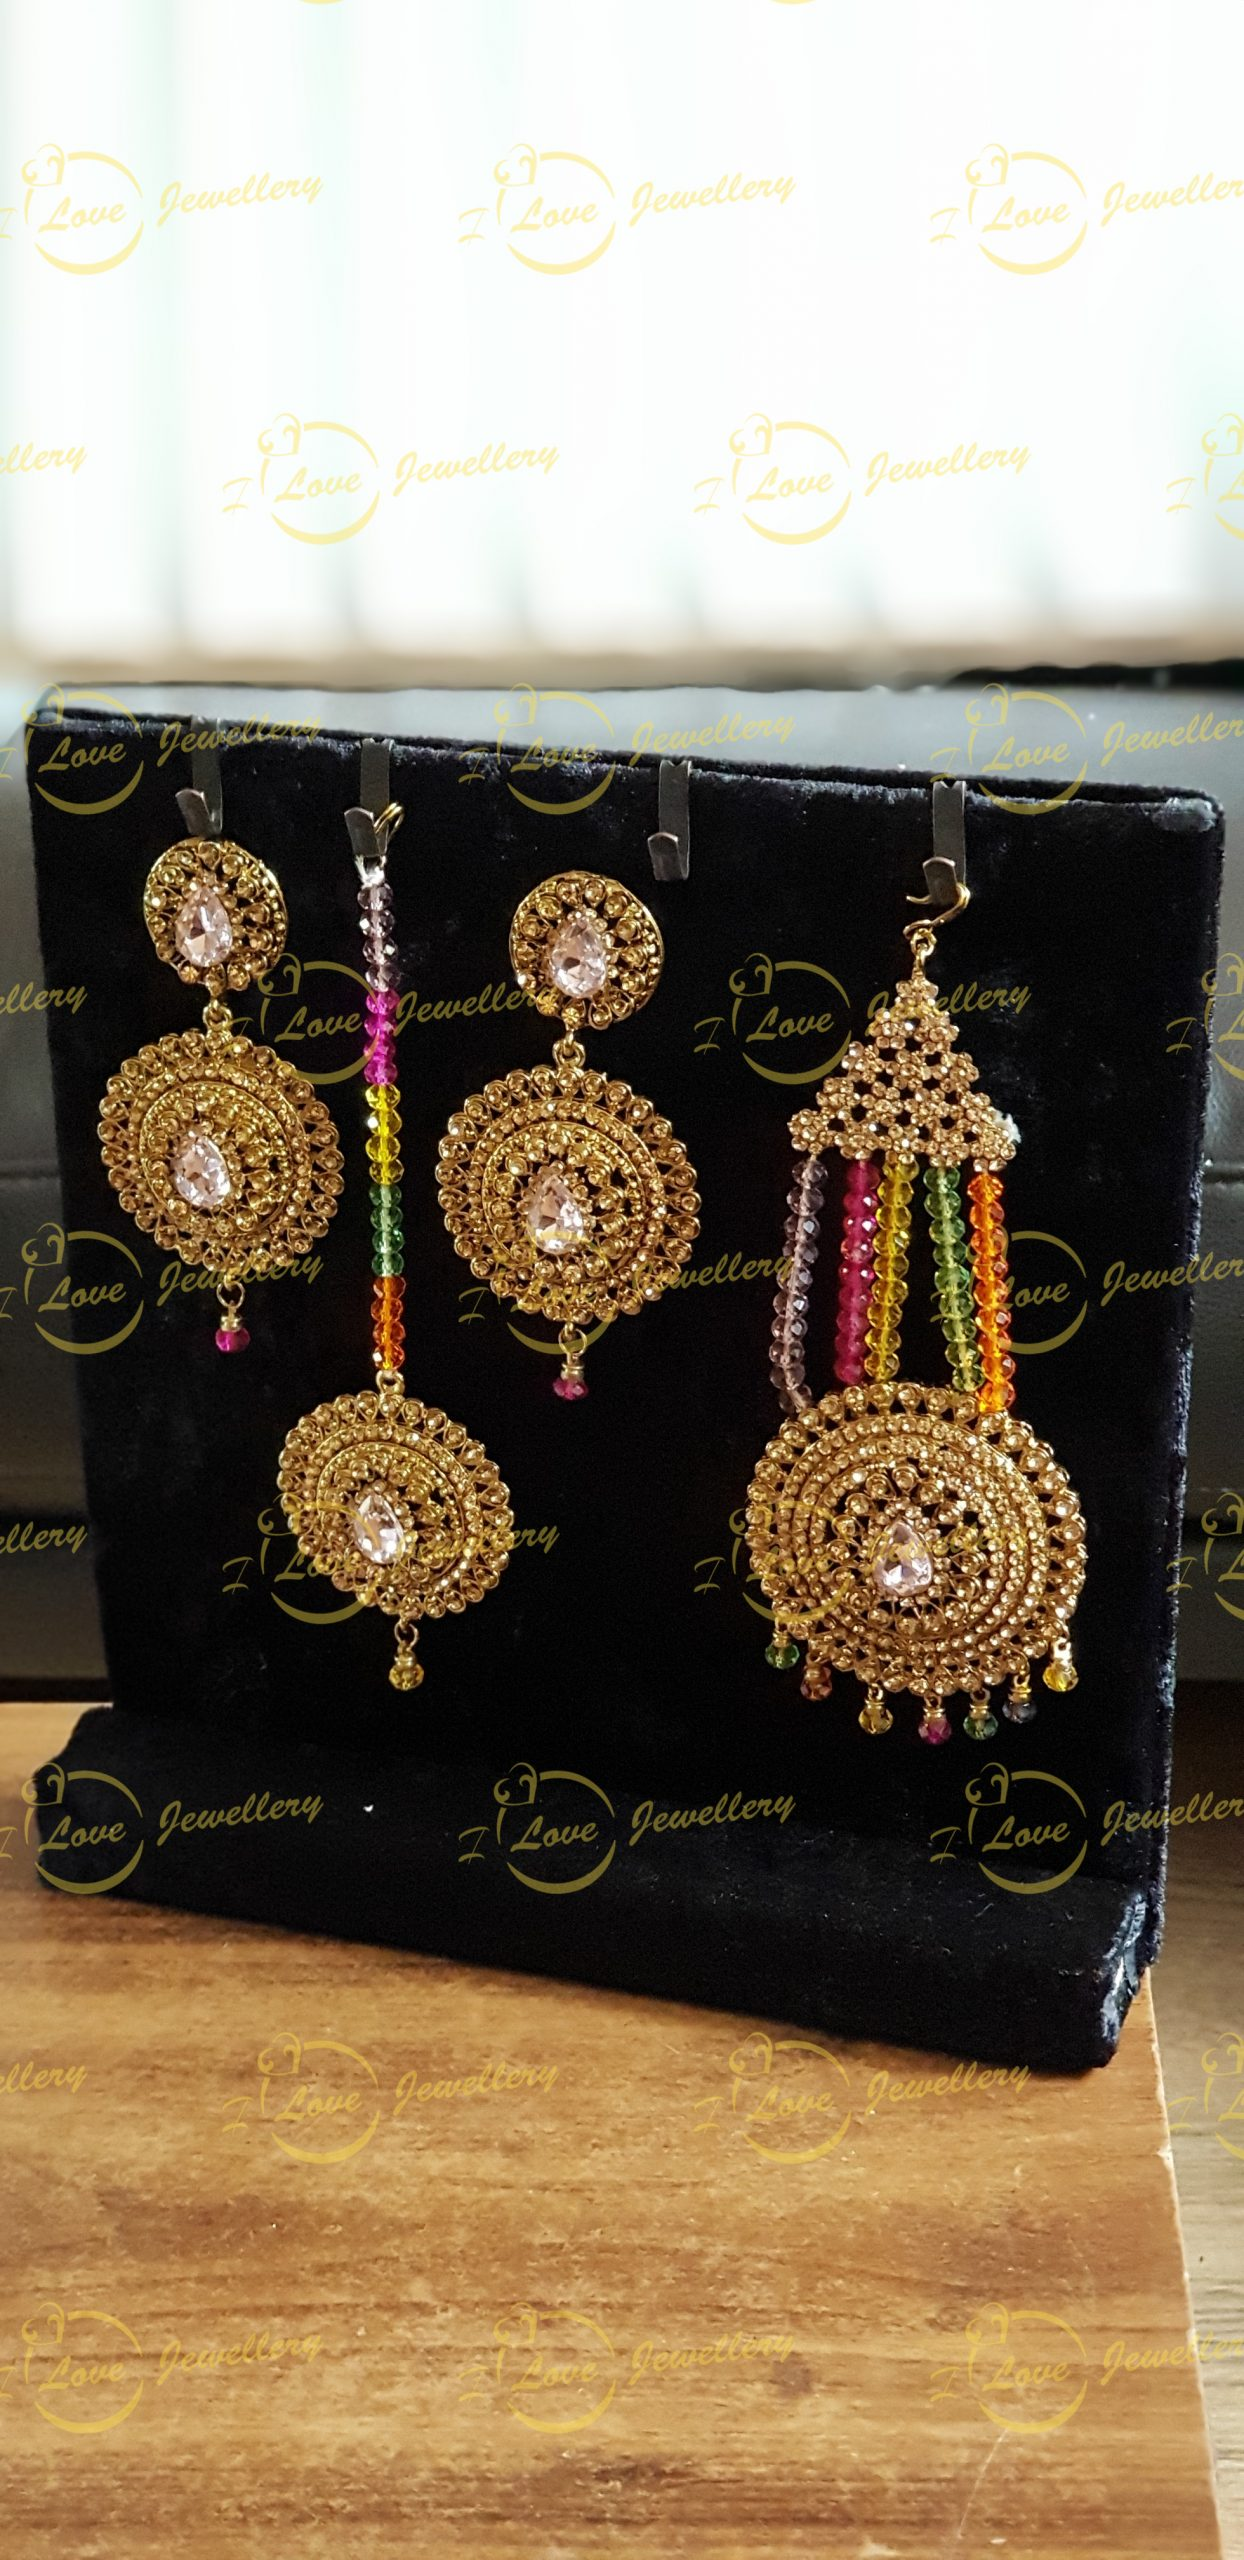 mehndi earrings tikka jhoomar set - mehndi jewellery - bridal earrings - wholesale Pakistani jewellery - bespoke Pakistani jewellery